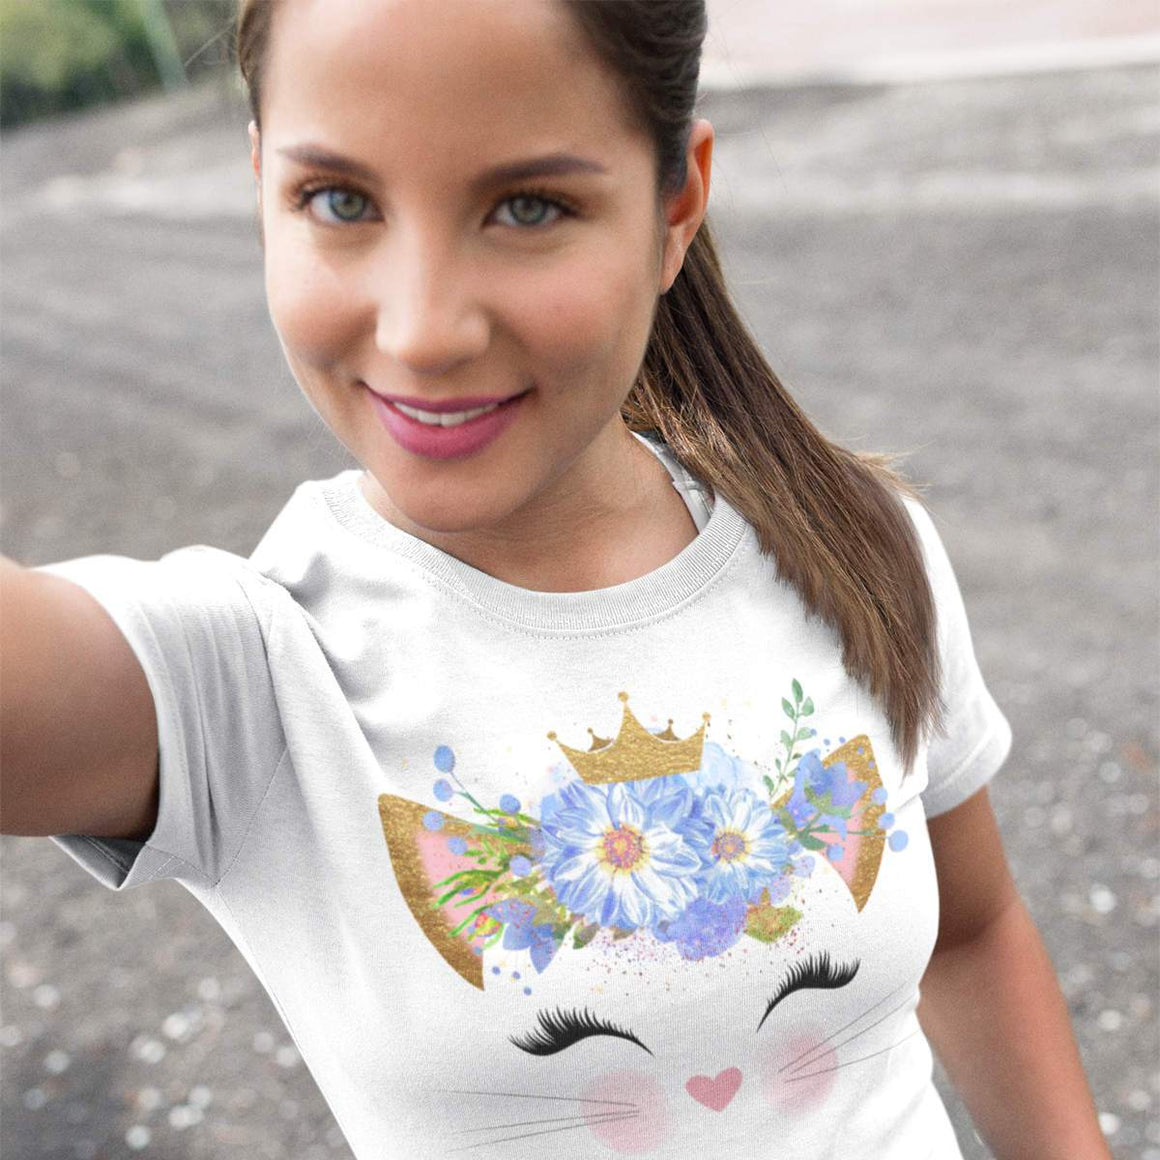 Flower Crown Short-Sleeve T-Shirt - Cats On Catnip